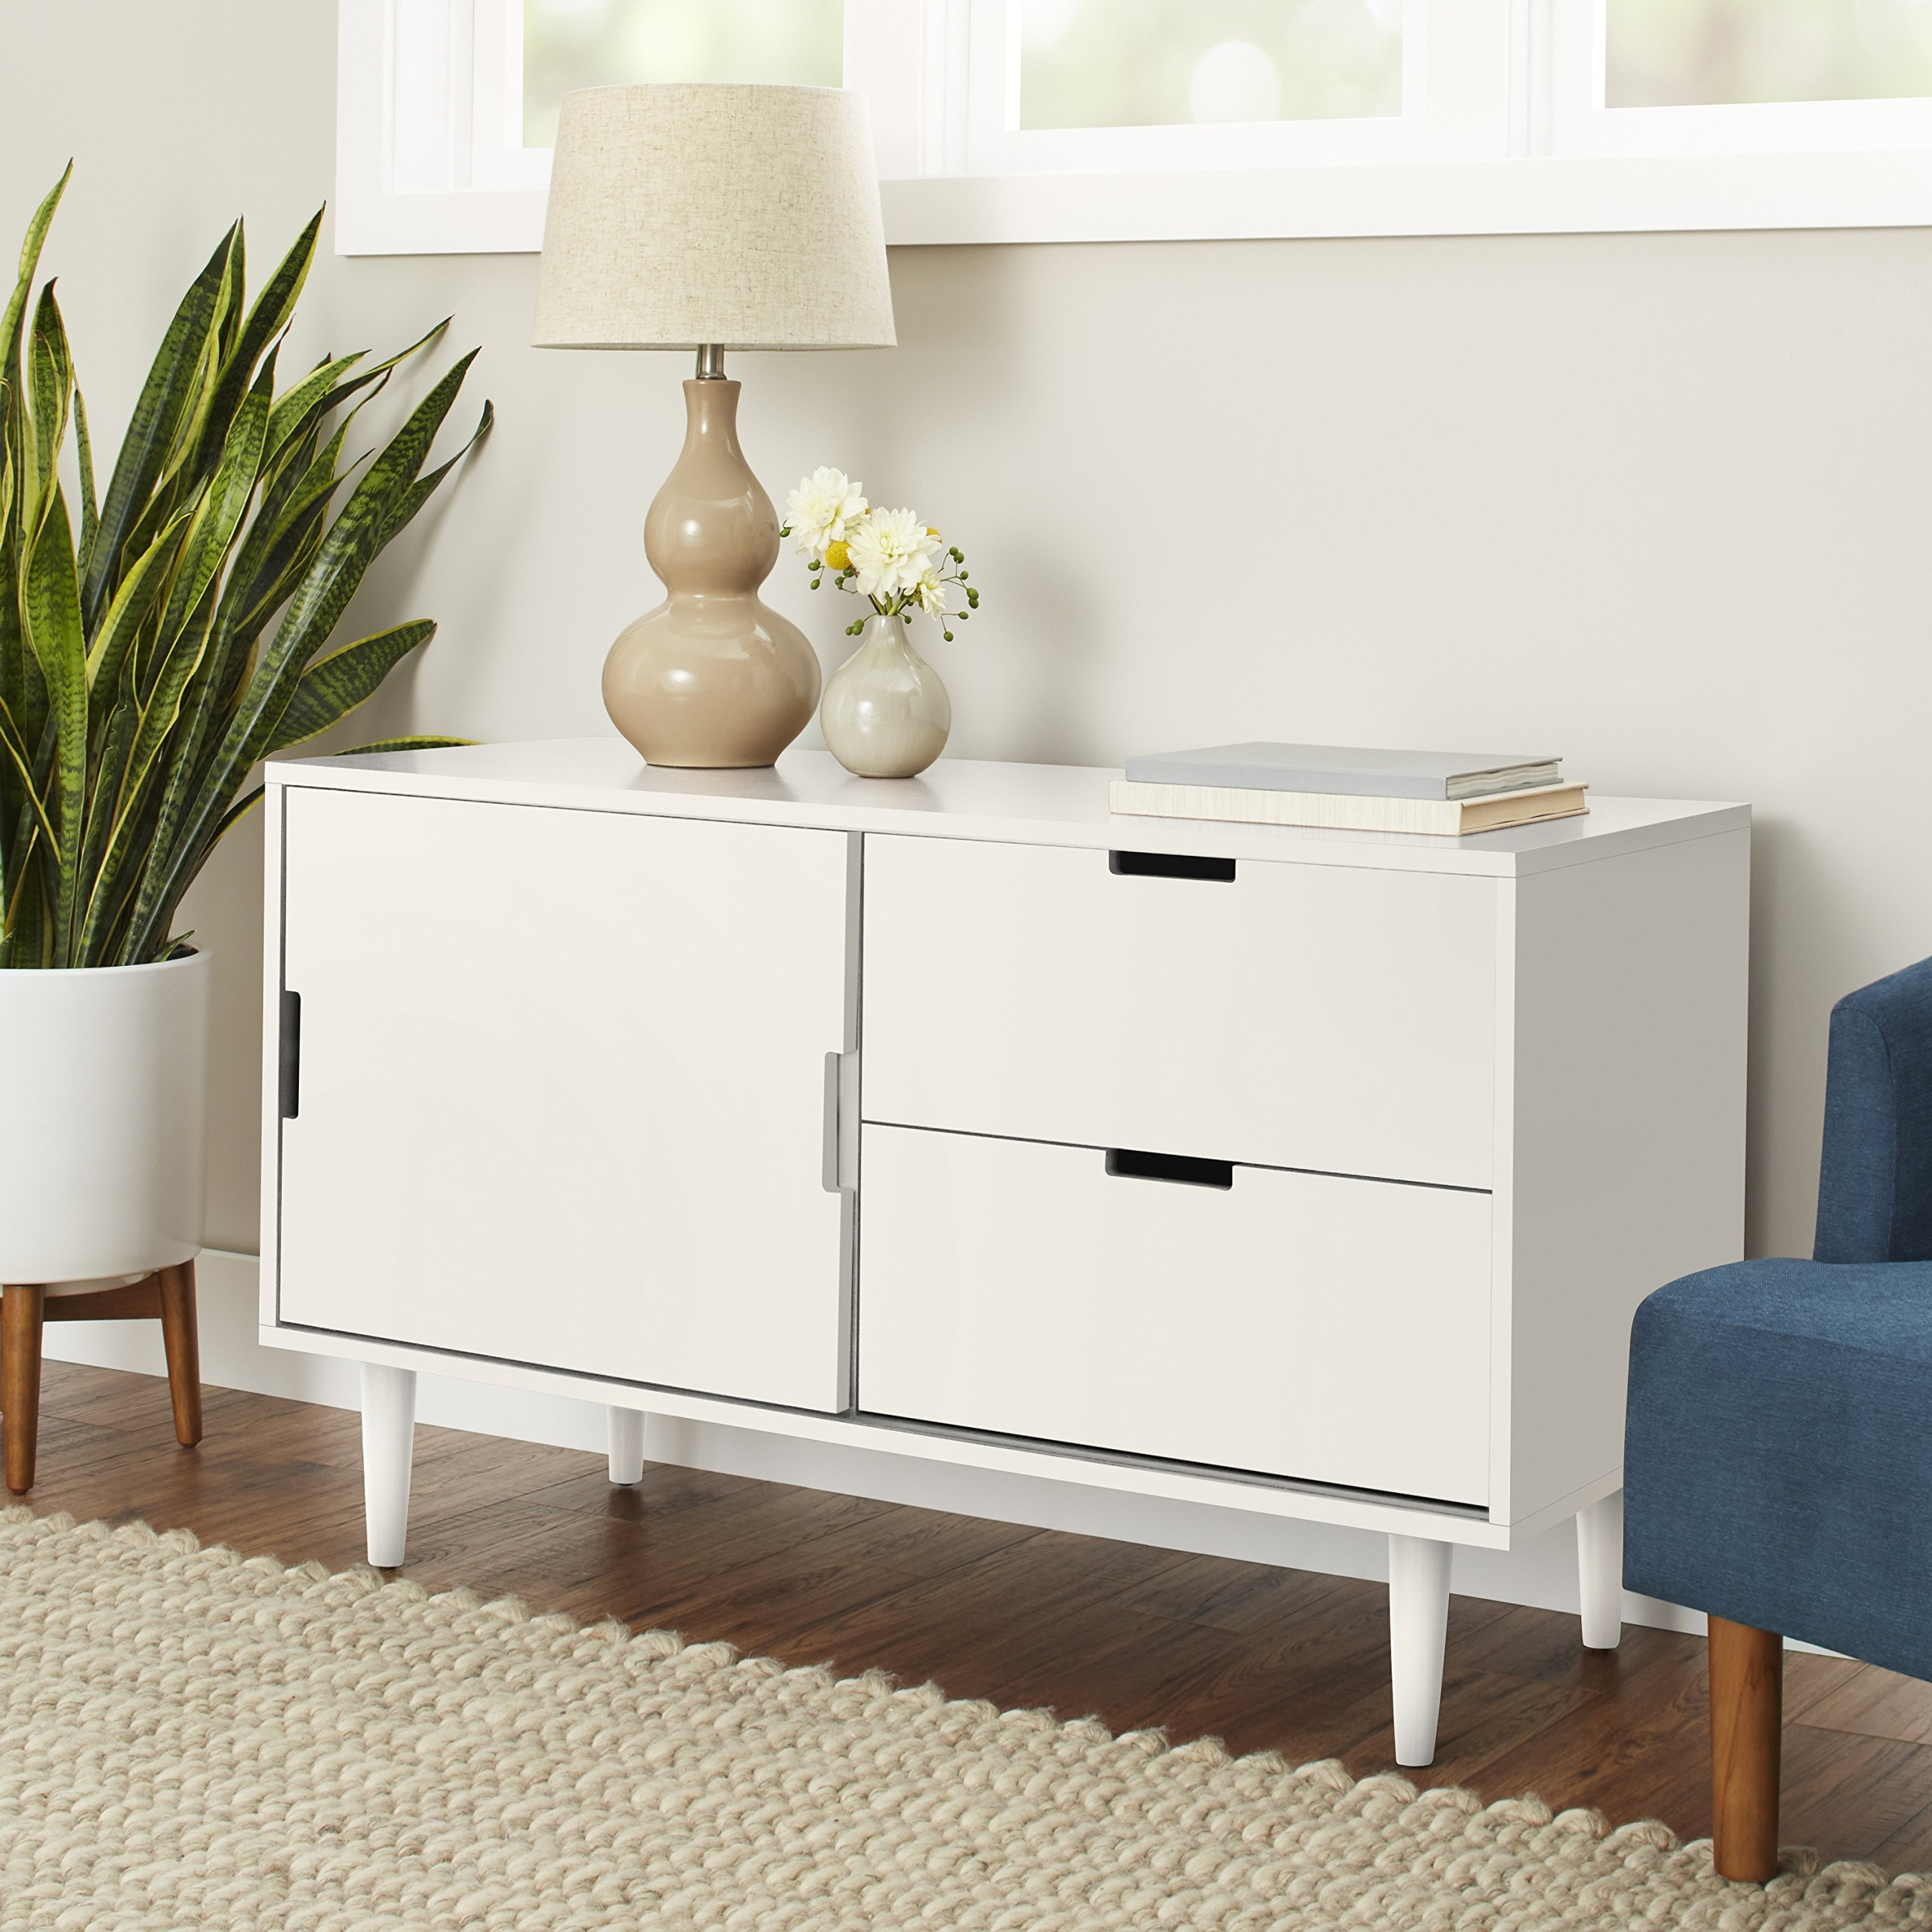 Better Homes and Gardens Flynn Mid Century Modern Credenza, White by Better Homes and Gardens (Image #1)